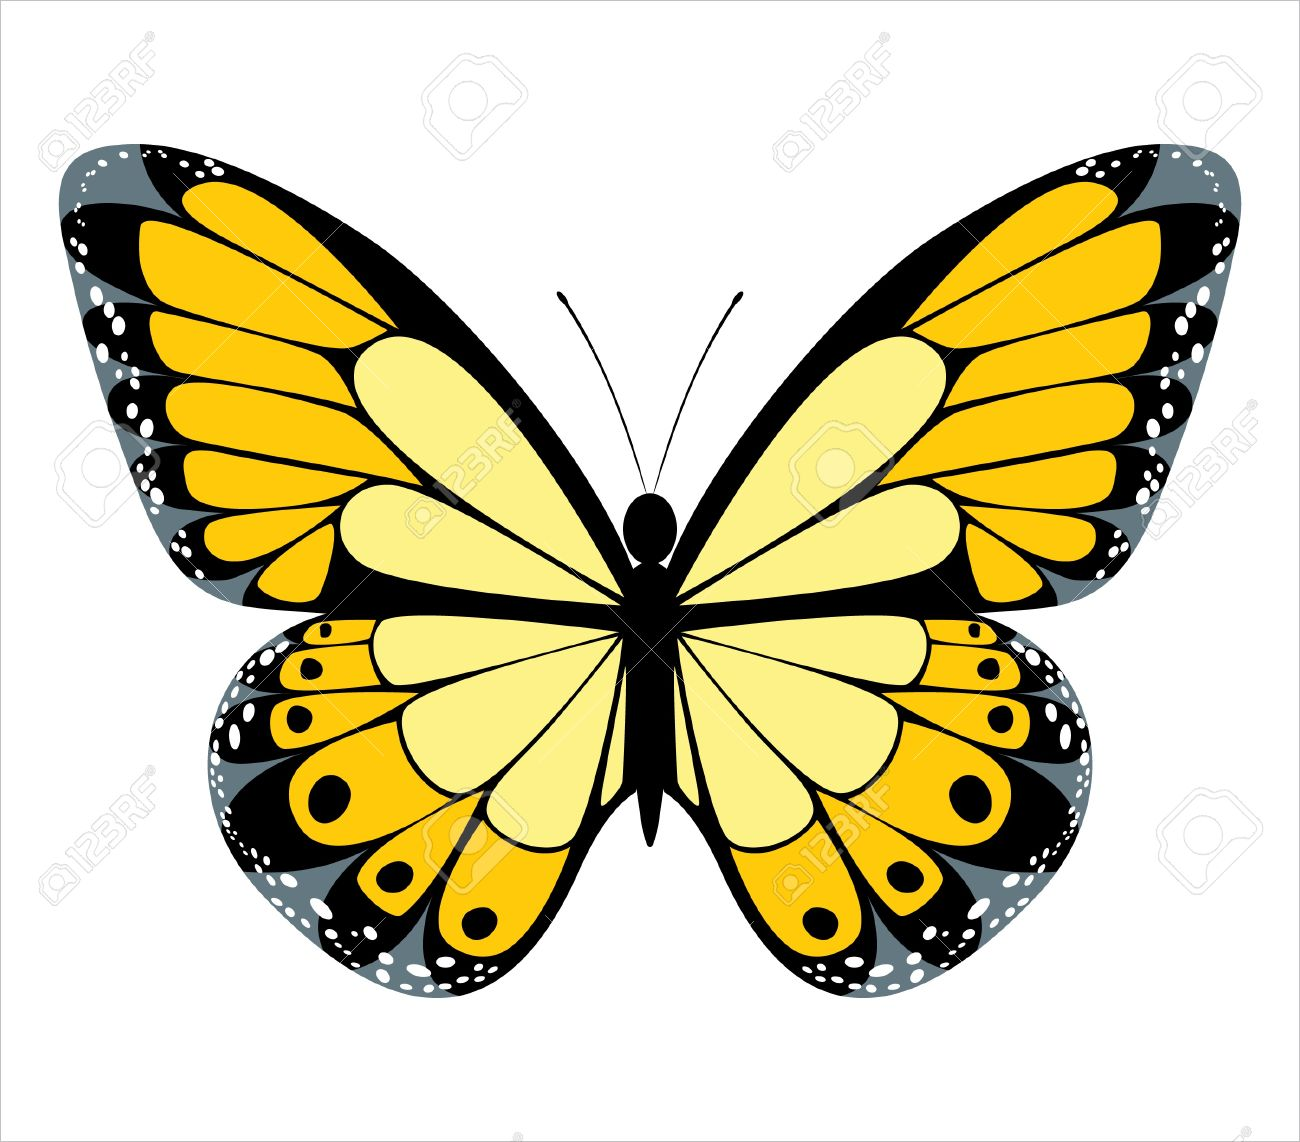 stylized butterfly icon royalty free cliparts vectors and stock illustration image 14270565 stylized butterfly icon